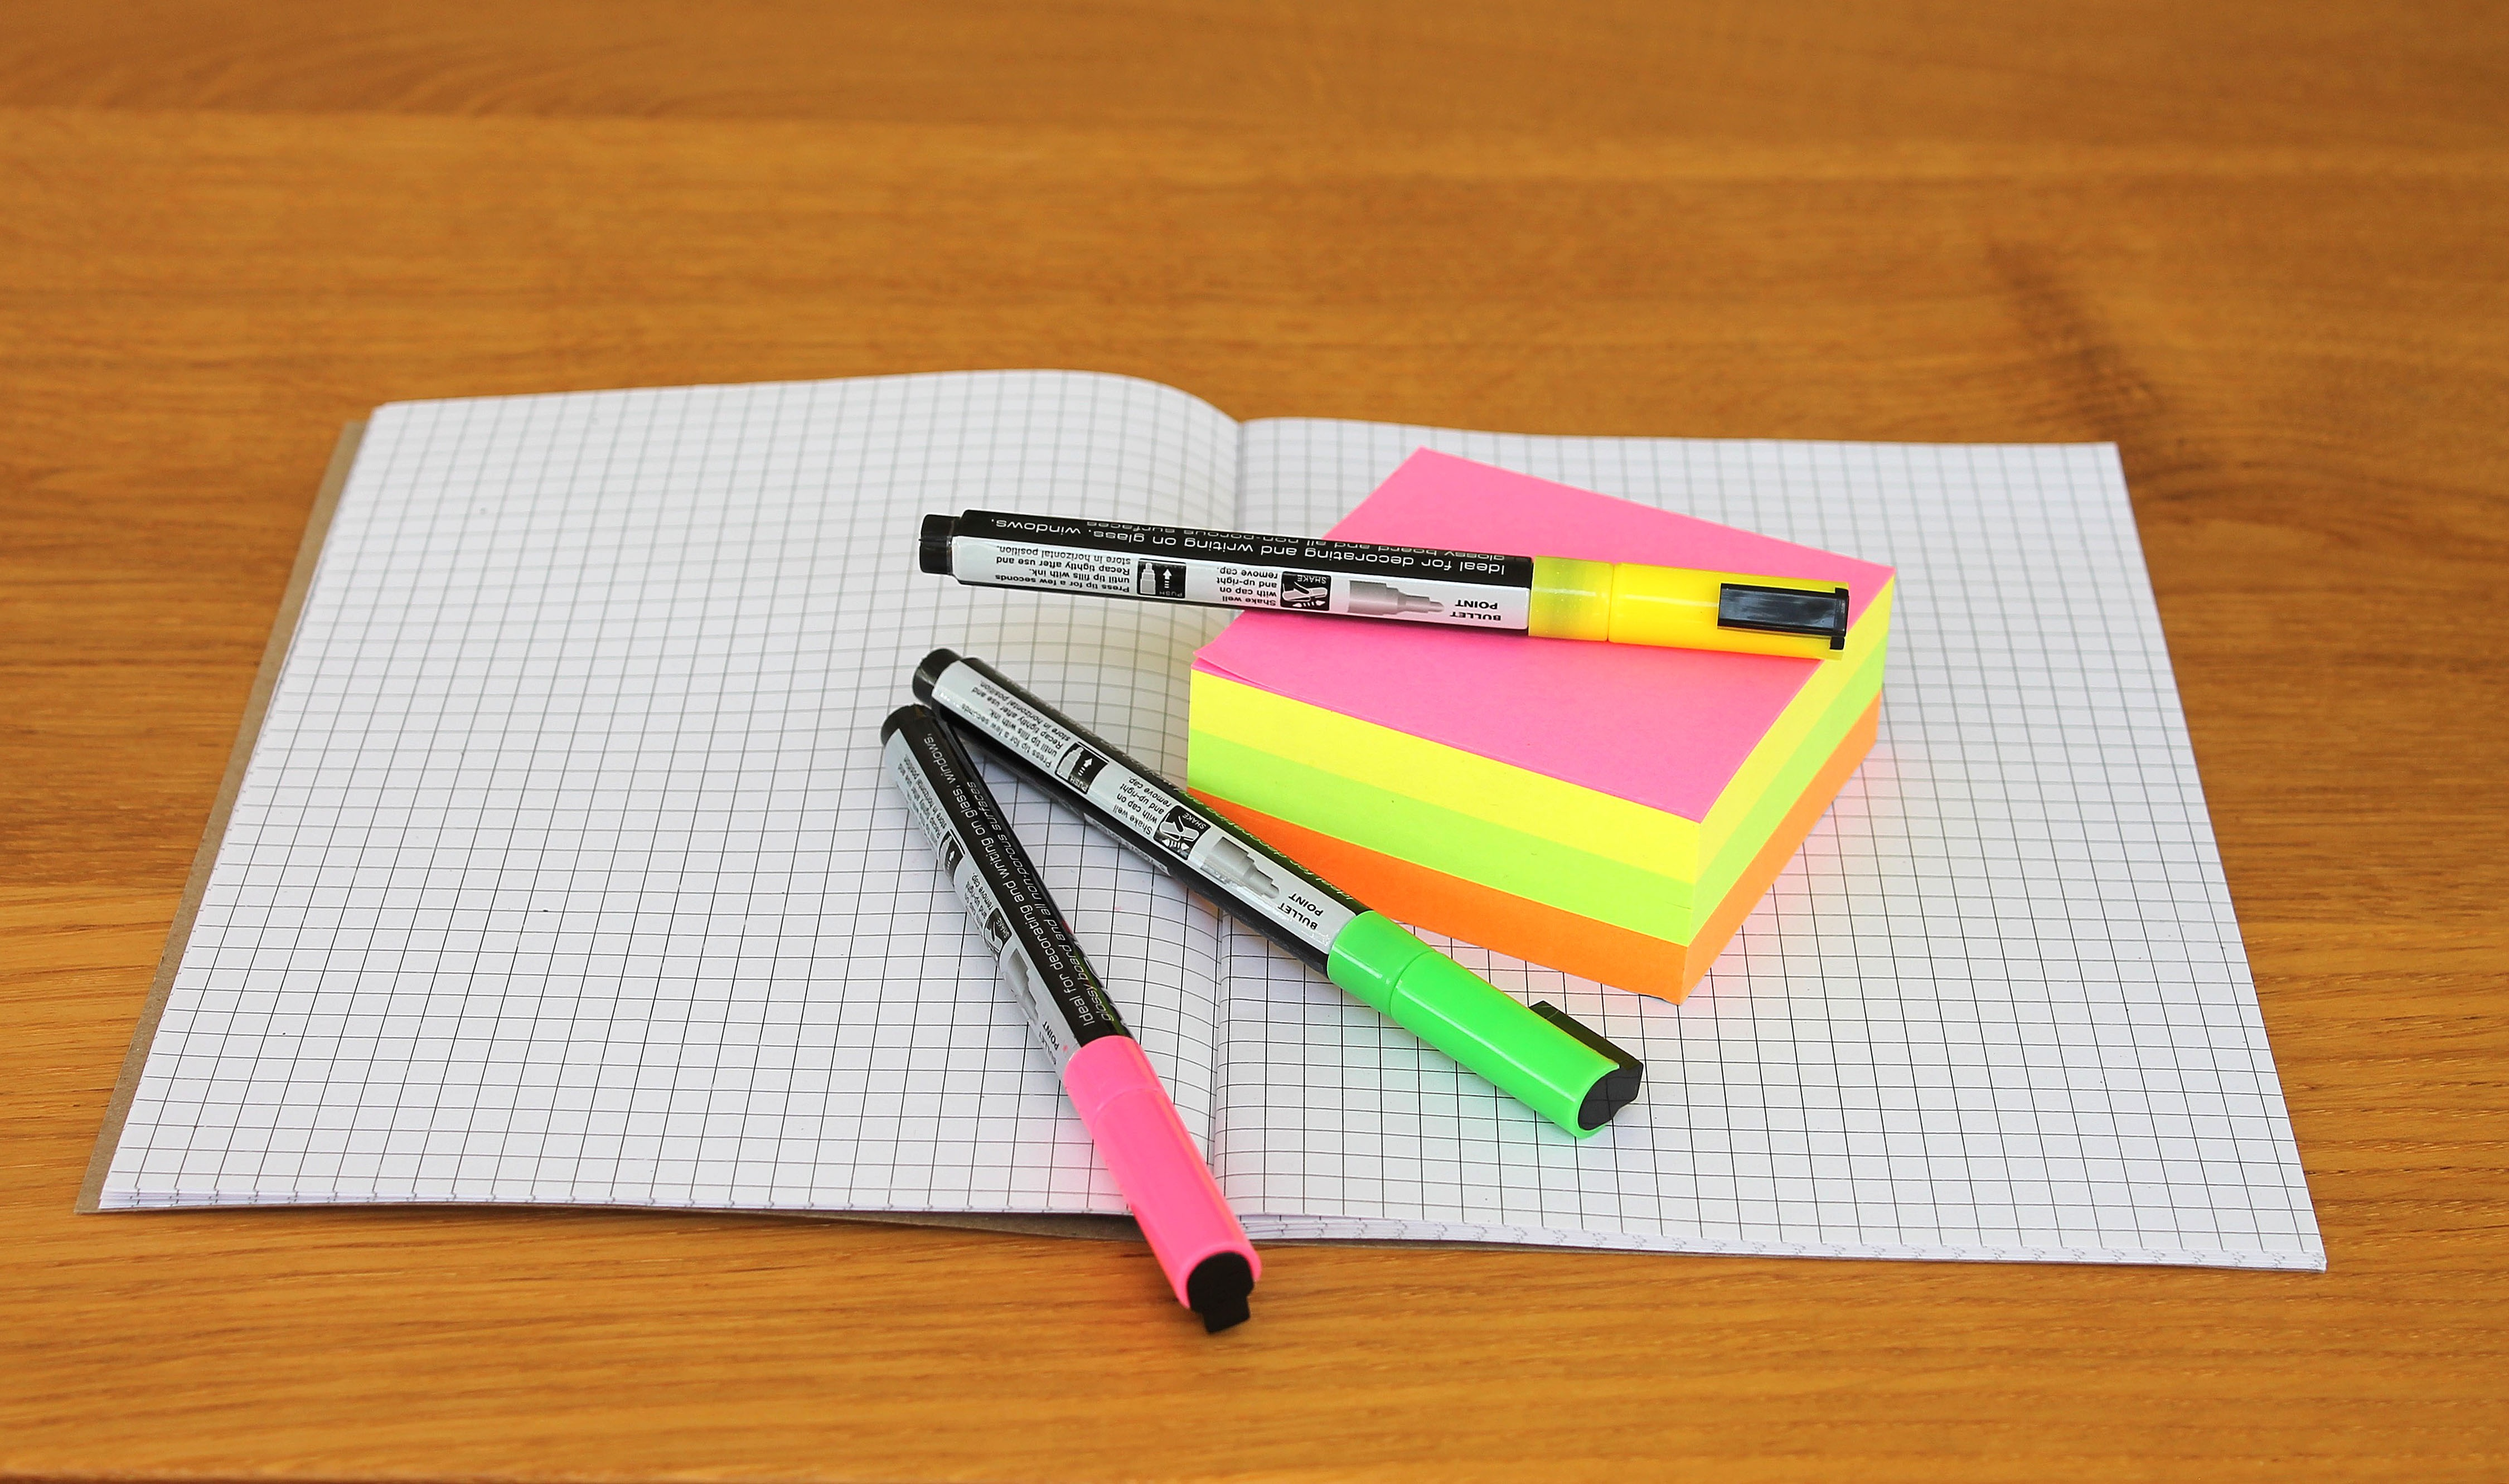 Lock Screen Wallpaper Hd Pink And Green Marker Place On Grafting Paper 183 Free Stock